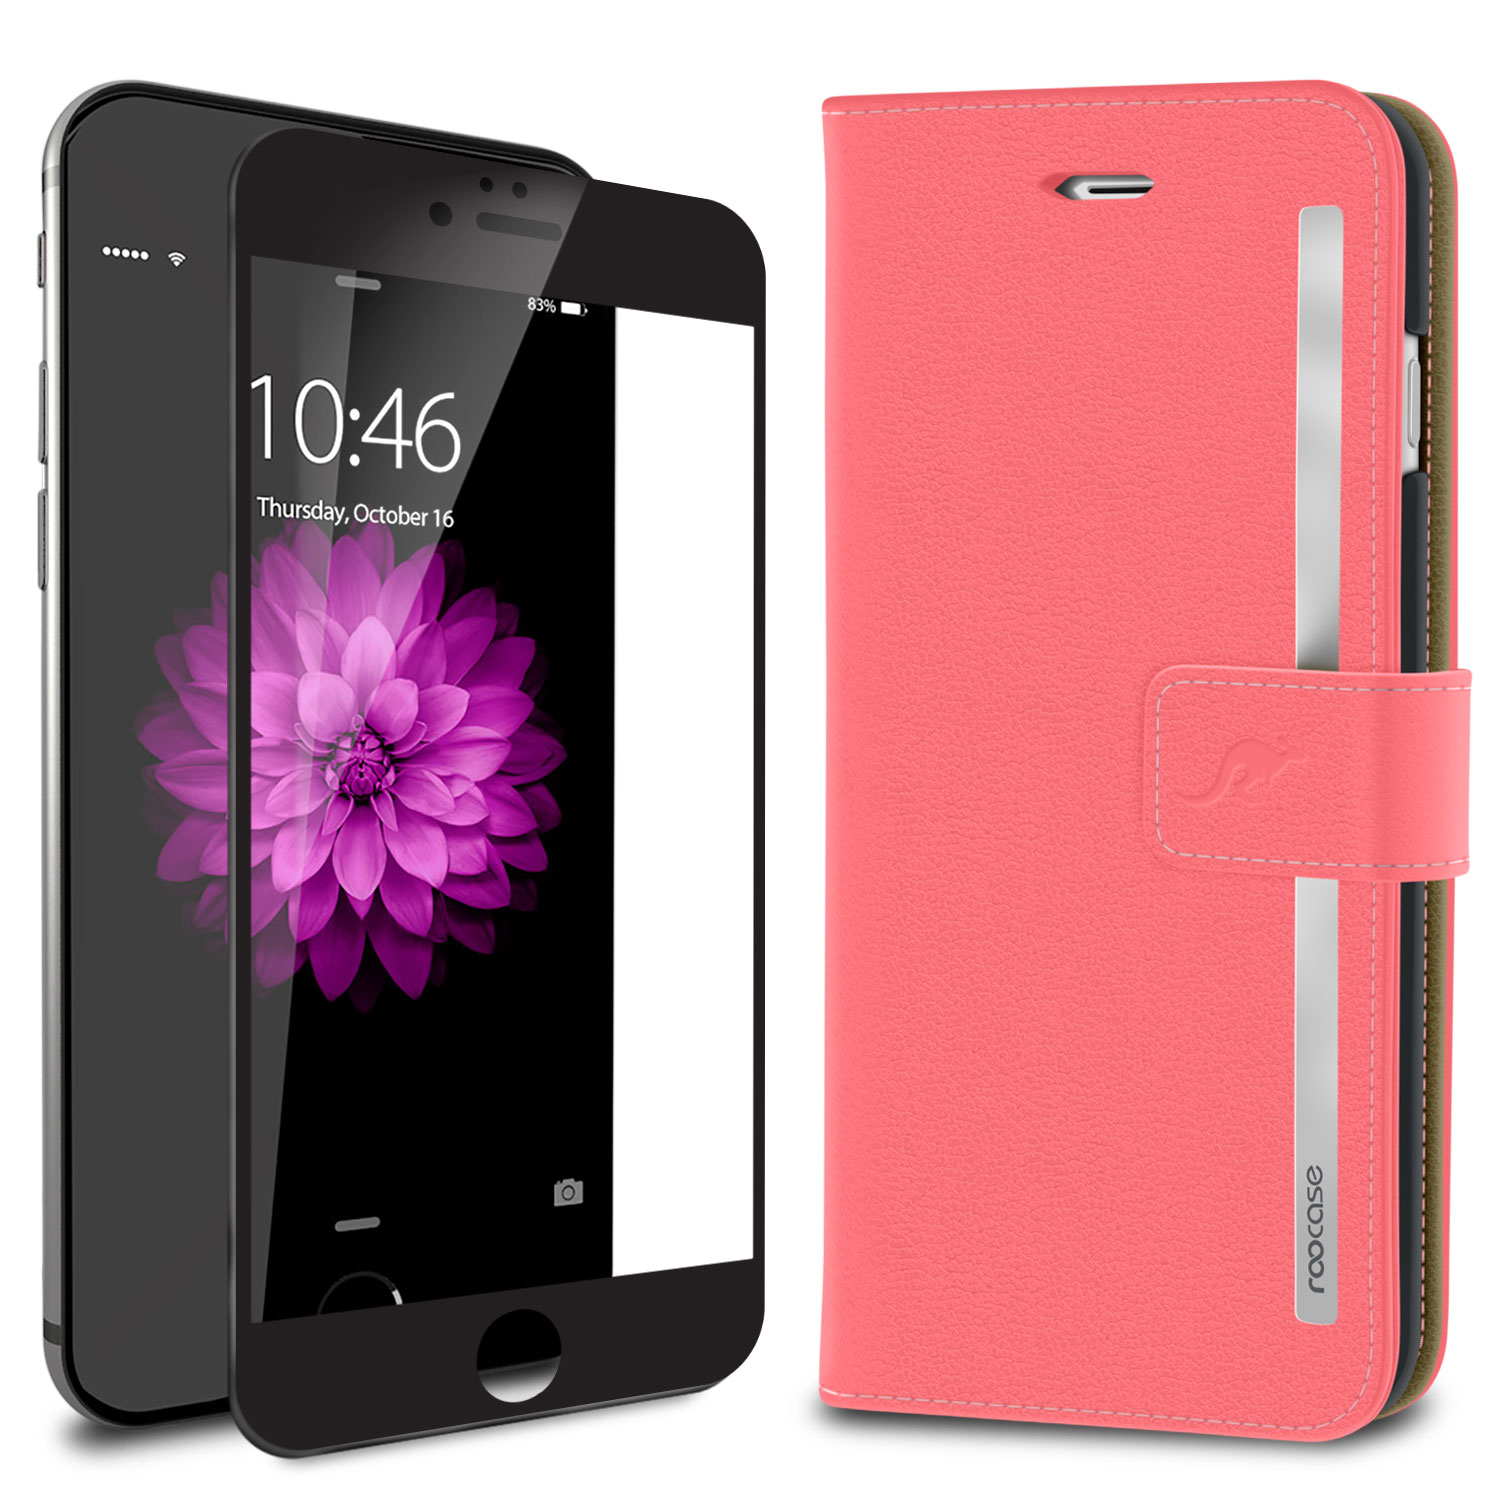 iPhone 6s Case, roocase [Prestige Folio] iPhone 6s Wallet Case Cover Card Holder with Full Screen Cover Tempered Glass (Black Edge) for Apple iPhone 6s / 6 (2015), Pink